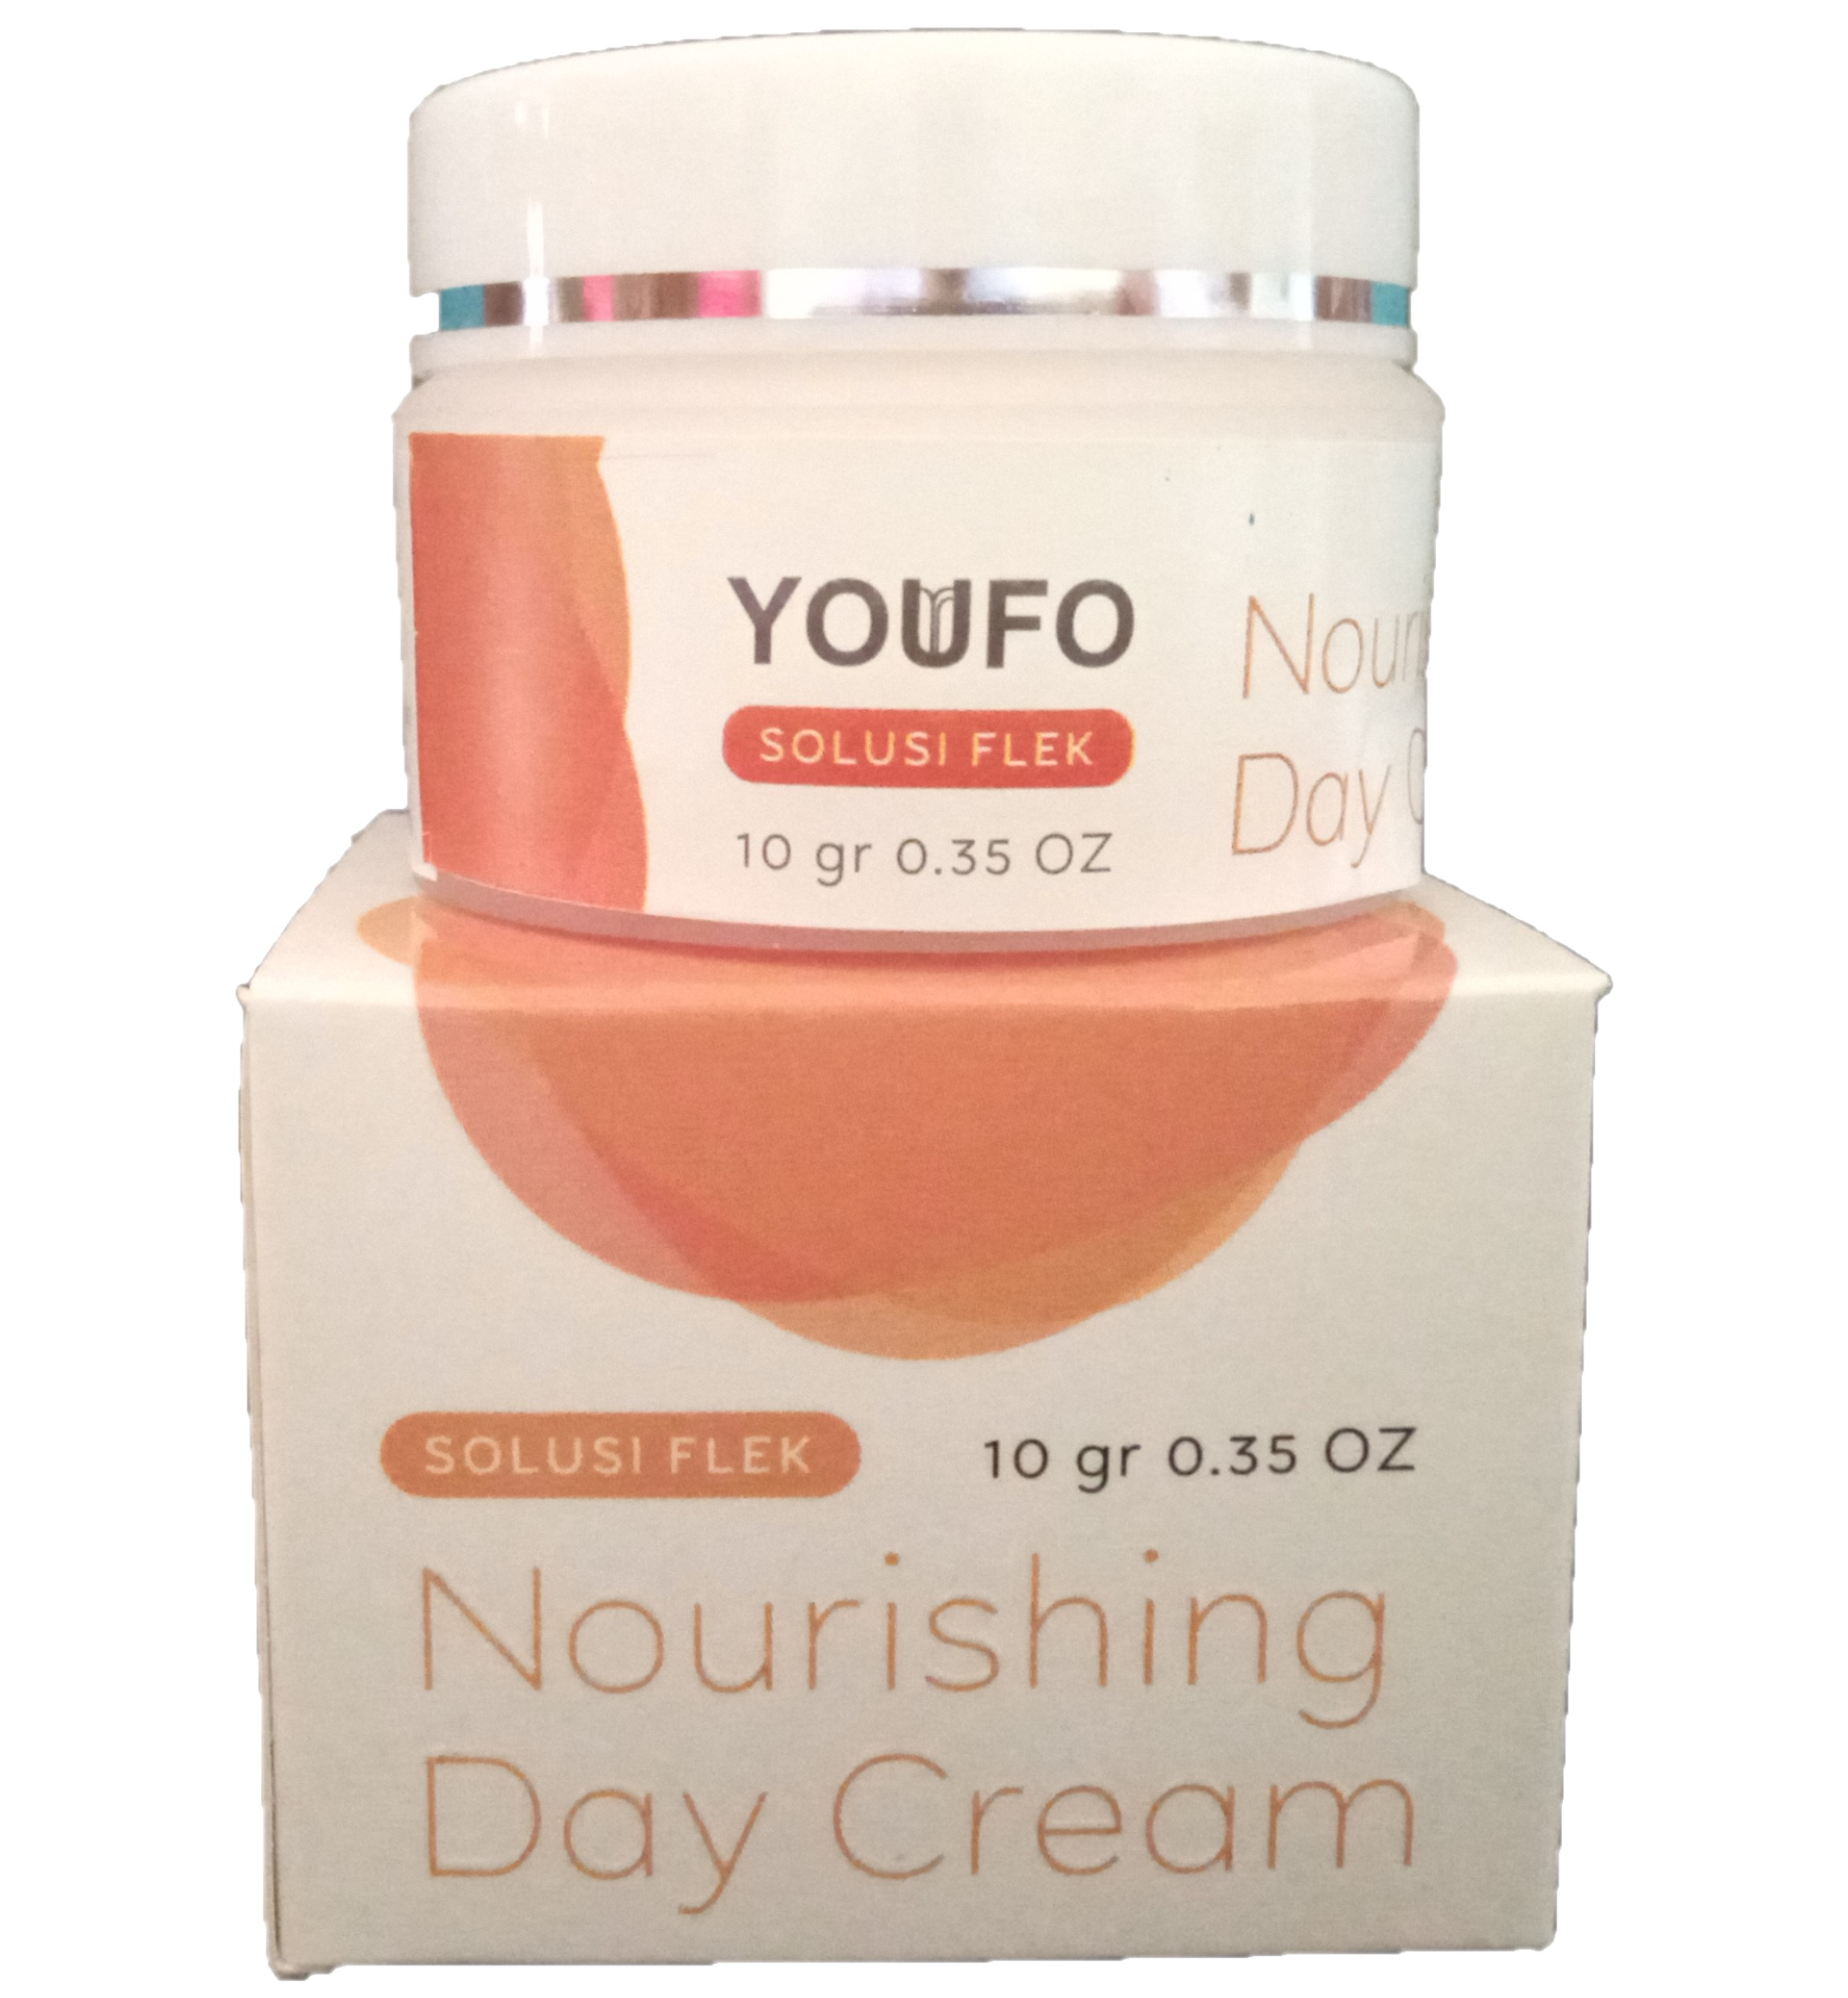 YouFo Nourishing Day Cream